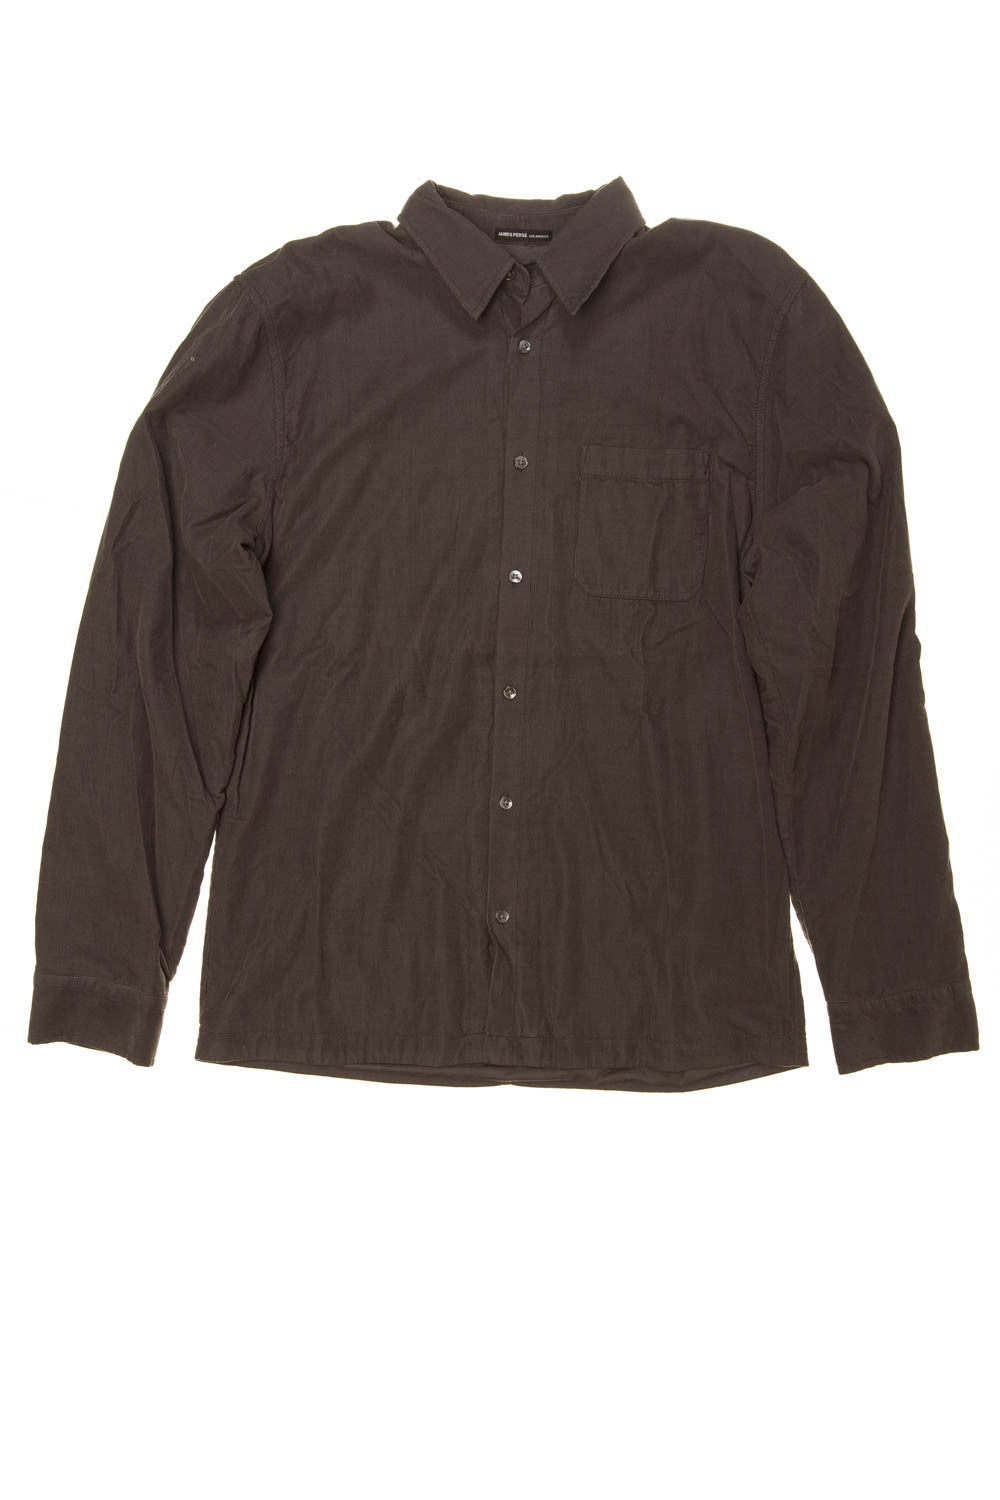 James Perse - Gray Long Sleeve Button Down - US 3